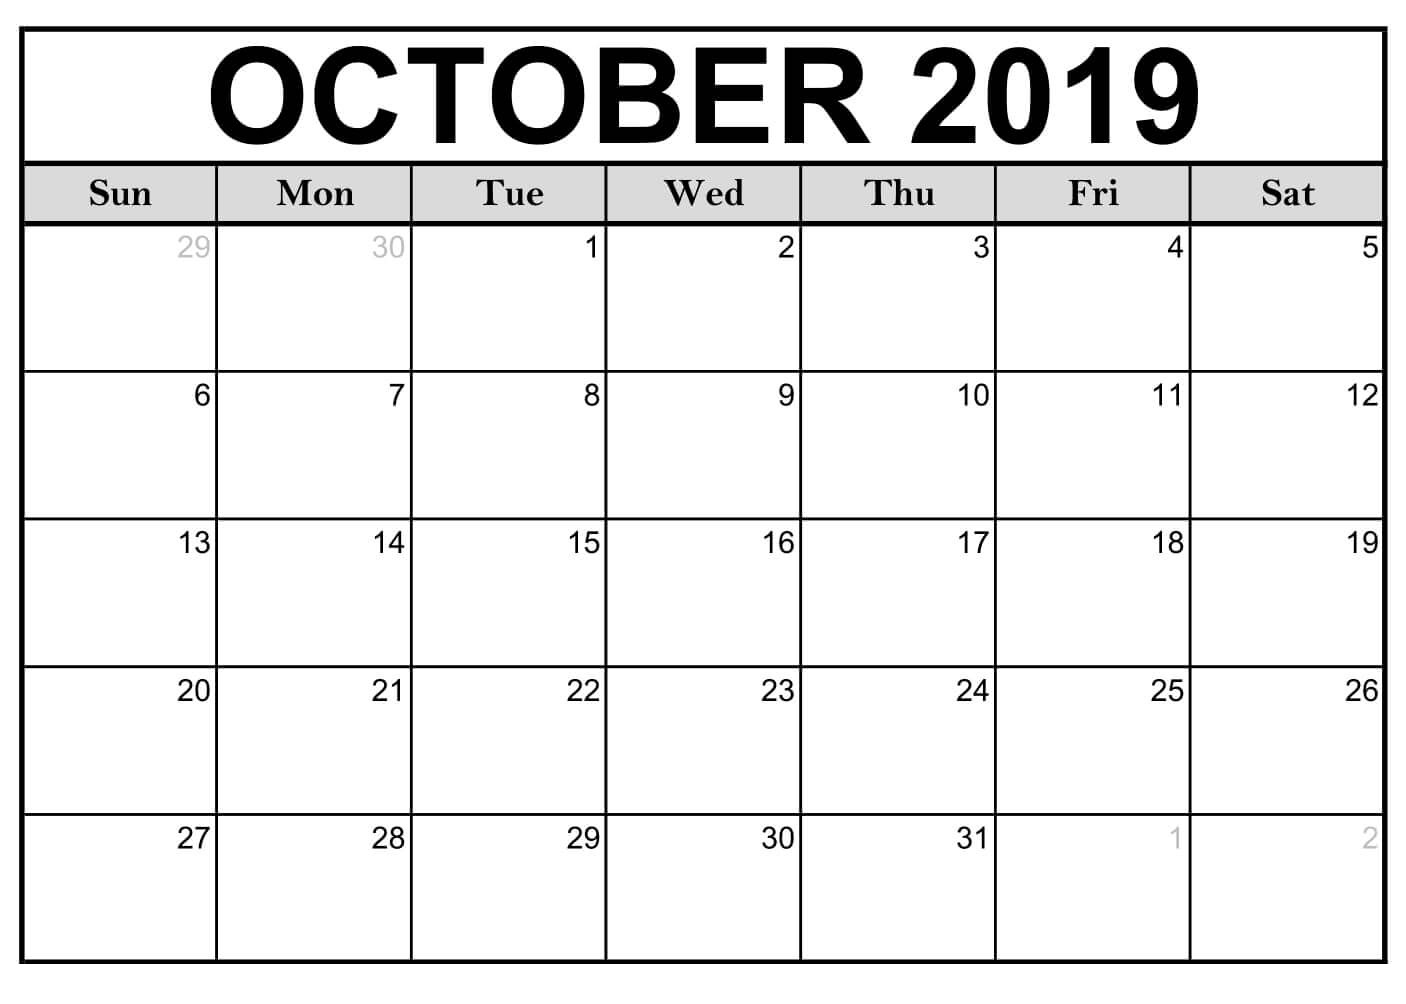 Blank October 2019 Calendar Printable Template  Latest pertaining to Blank 31 Day Calendar